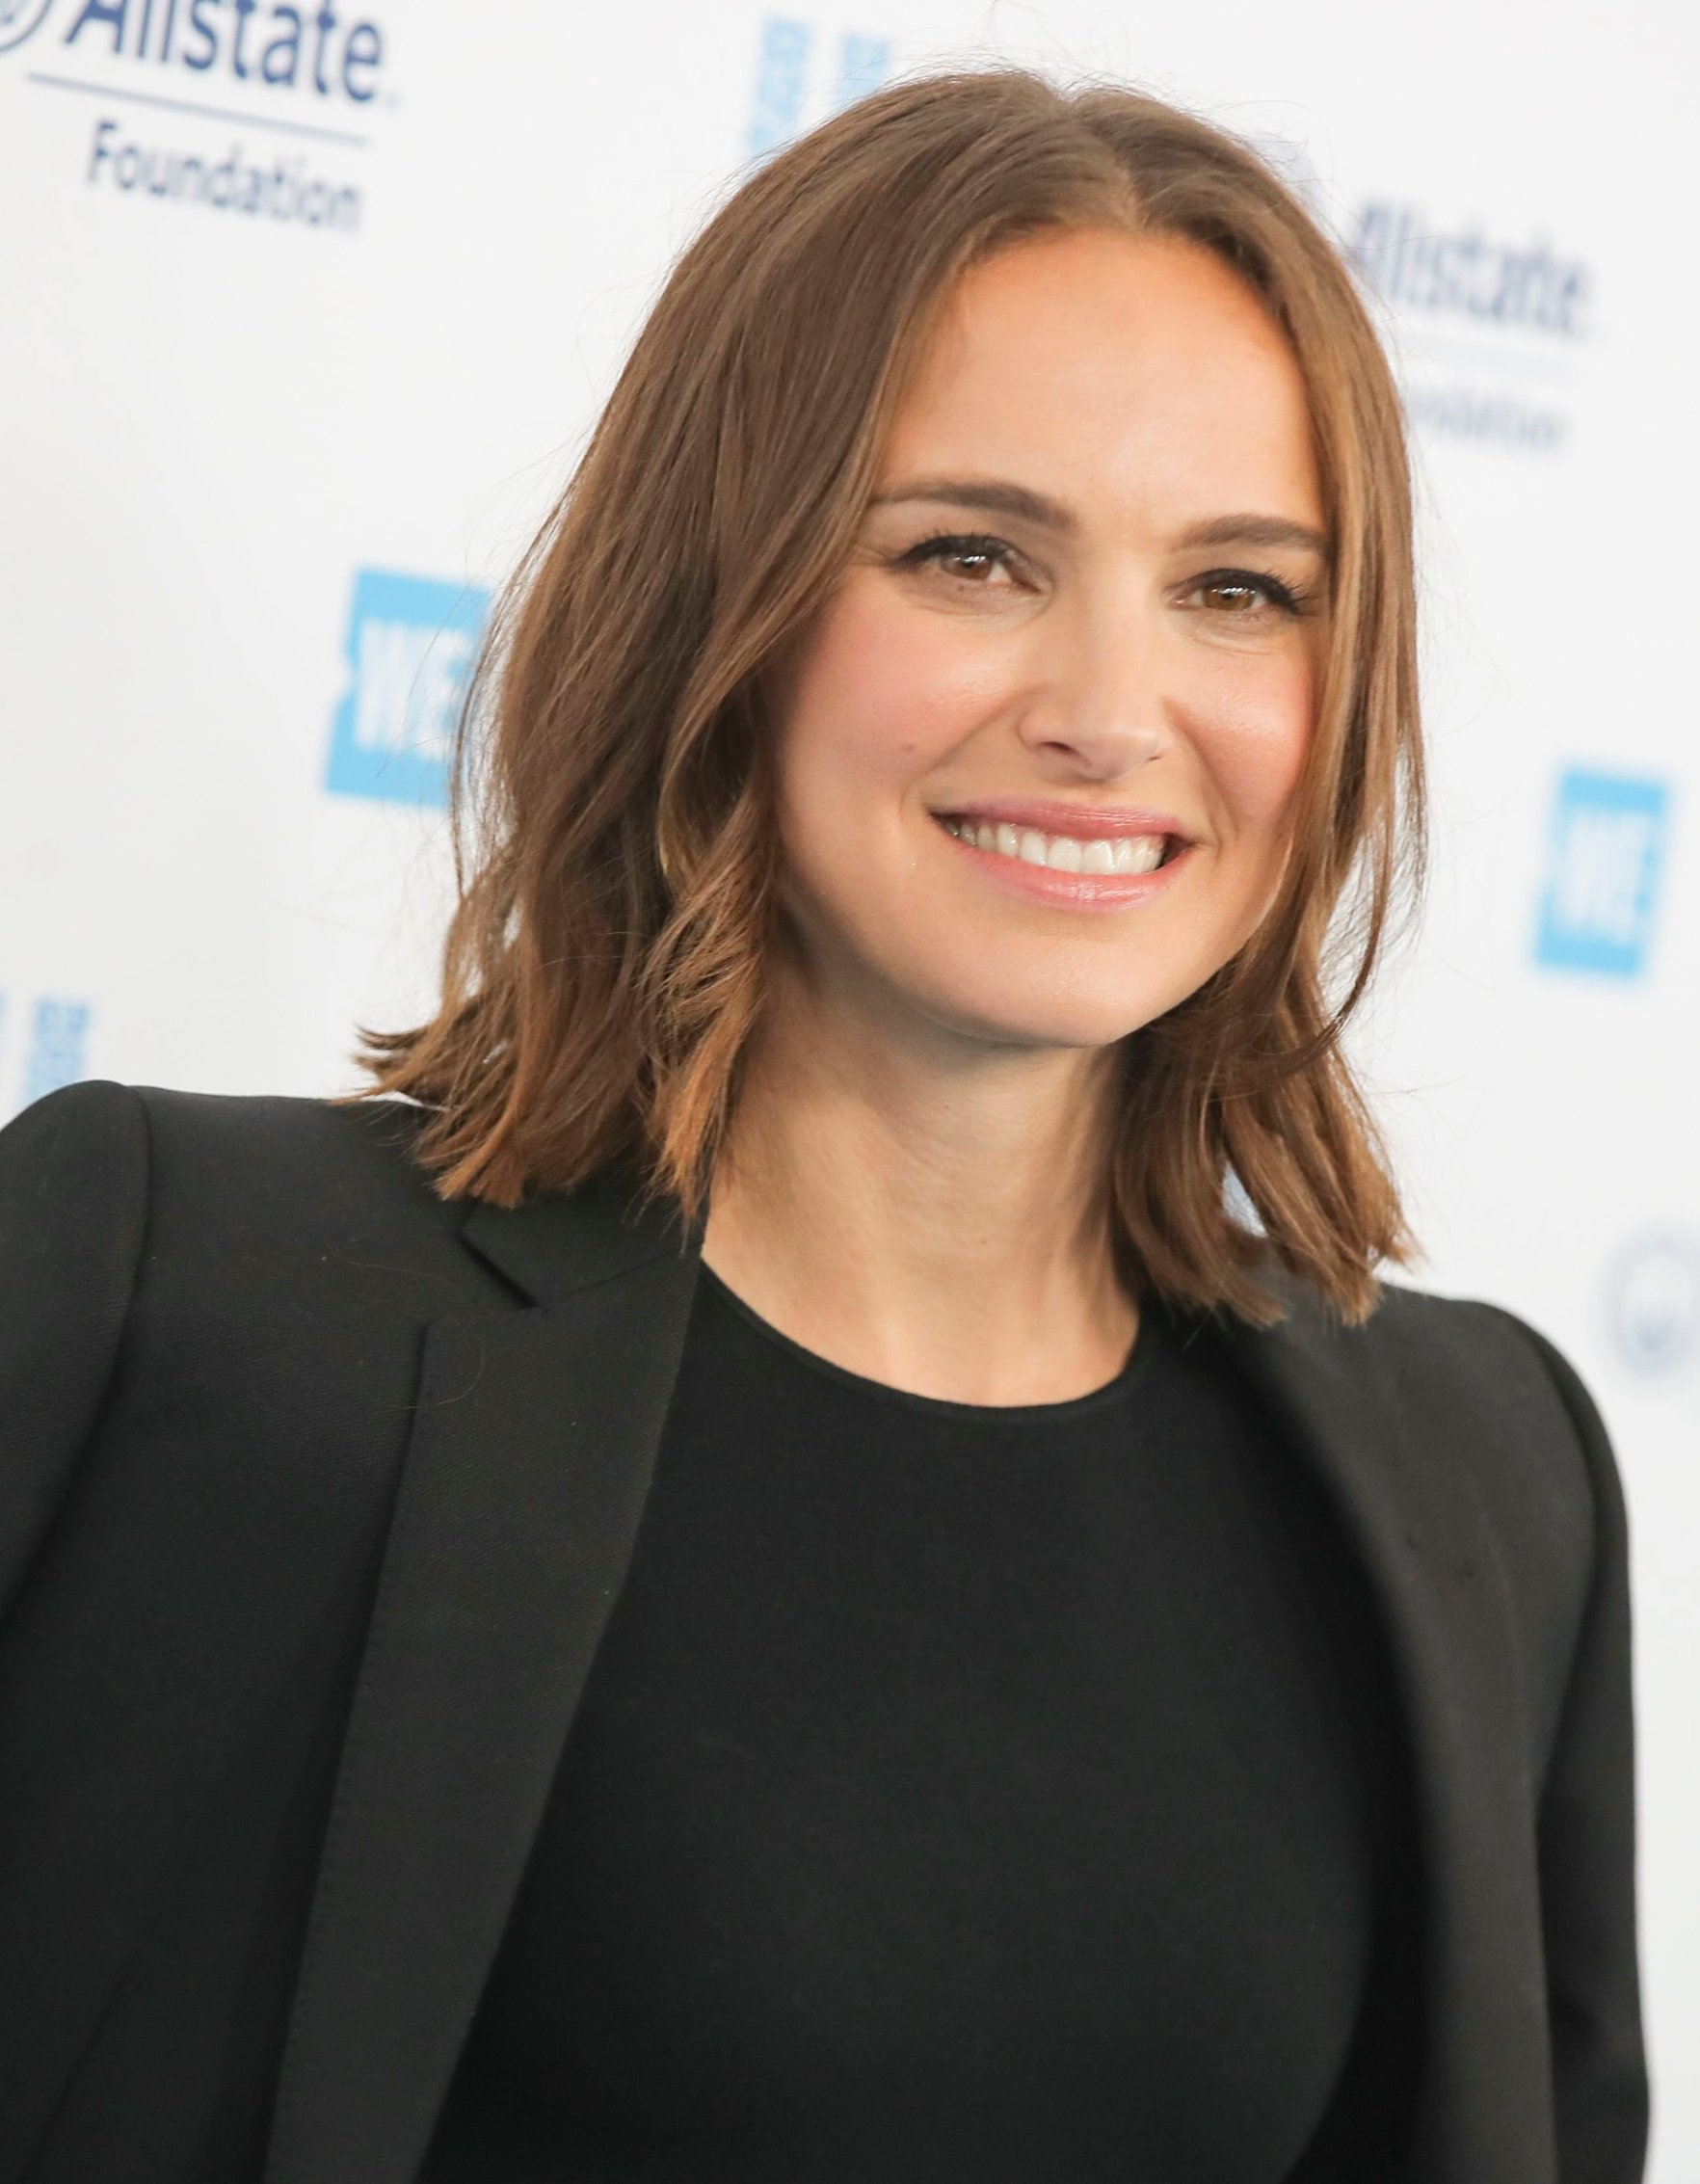 Natalie Portman WE Day California, Arrivals, The Forum, Los Angeles, USA - 25 Apr 2019, Image: 428356067, License: Rights-managed, Restrictions: , Model Release: no, Credit line: Profimedia, TEMP Rex Features